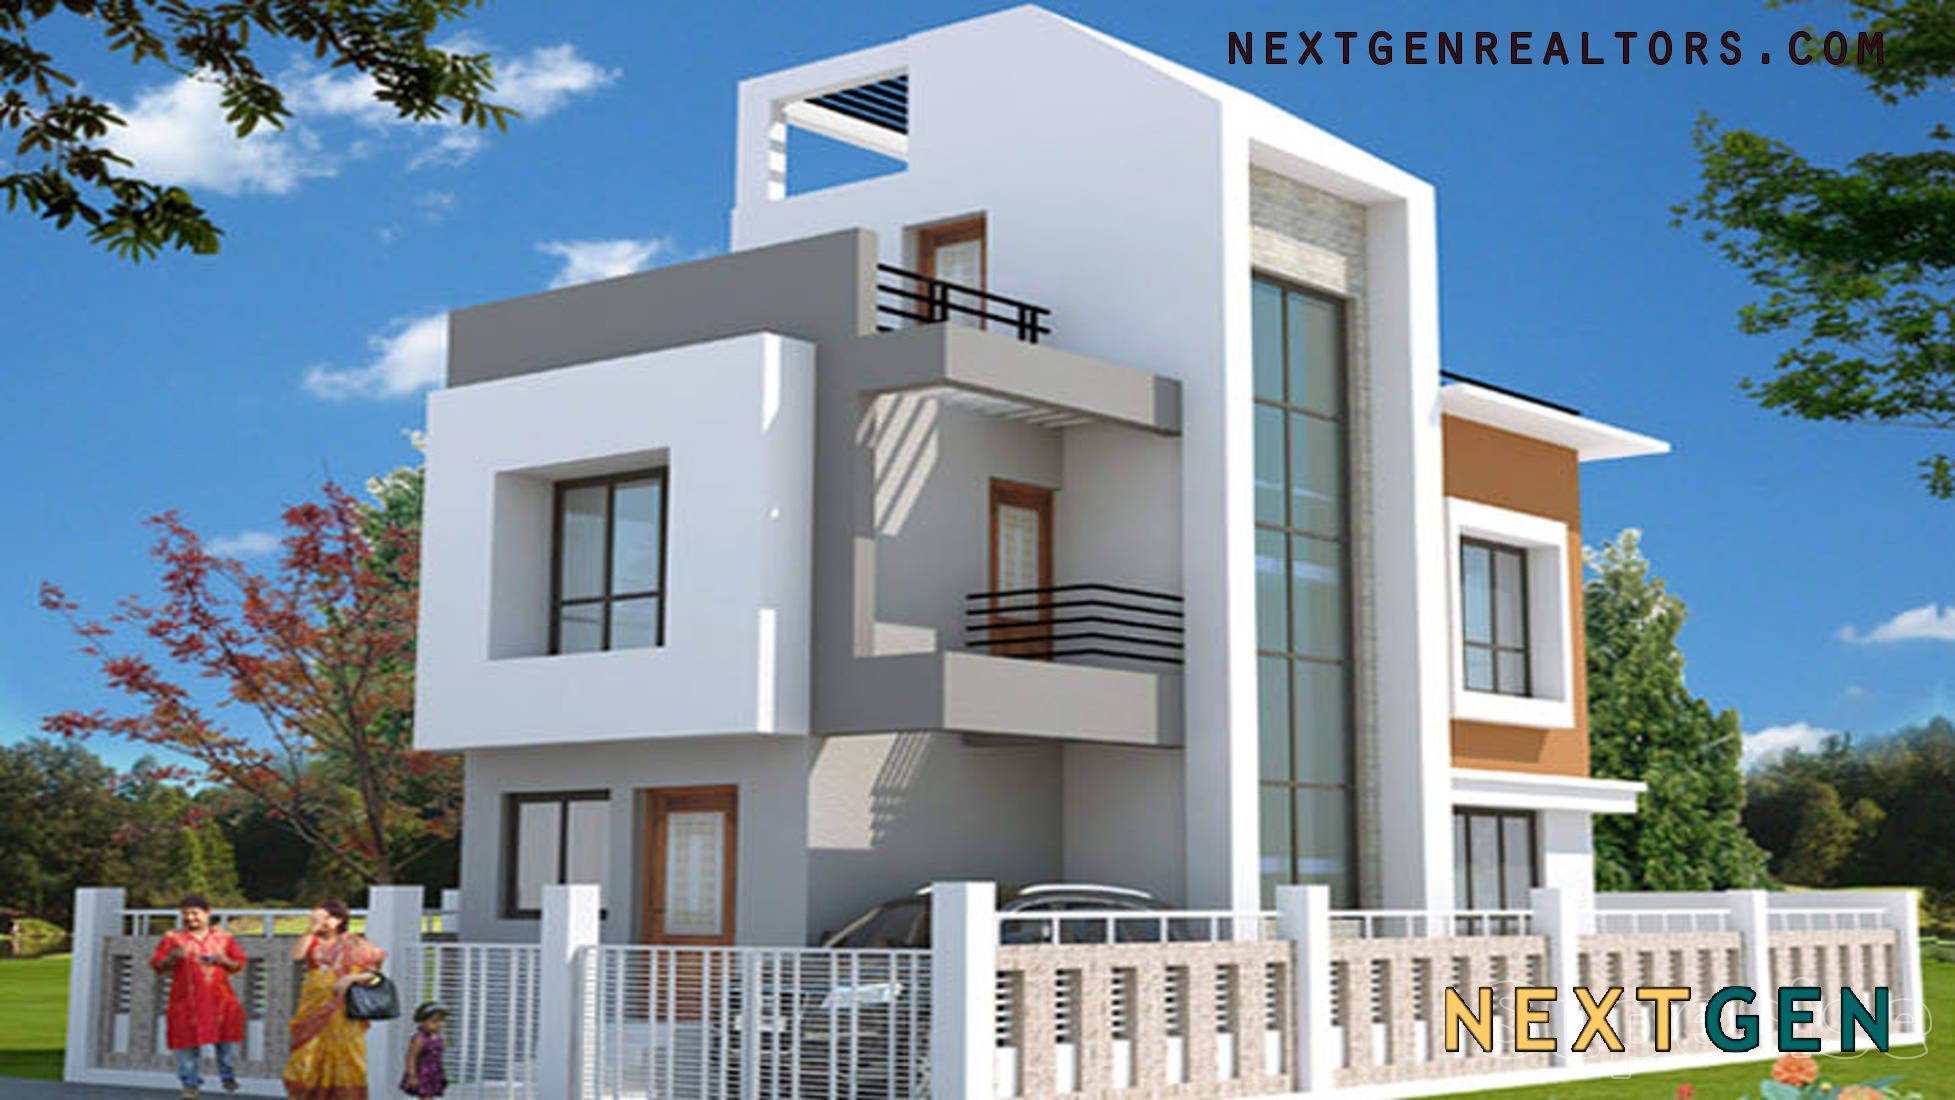 ce006ae8ec38dacc3952ce0acdc62b9e - Independent House For Sale In Nectar Gardens Madhapur